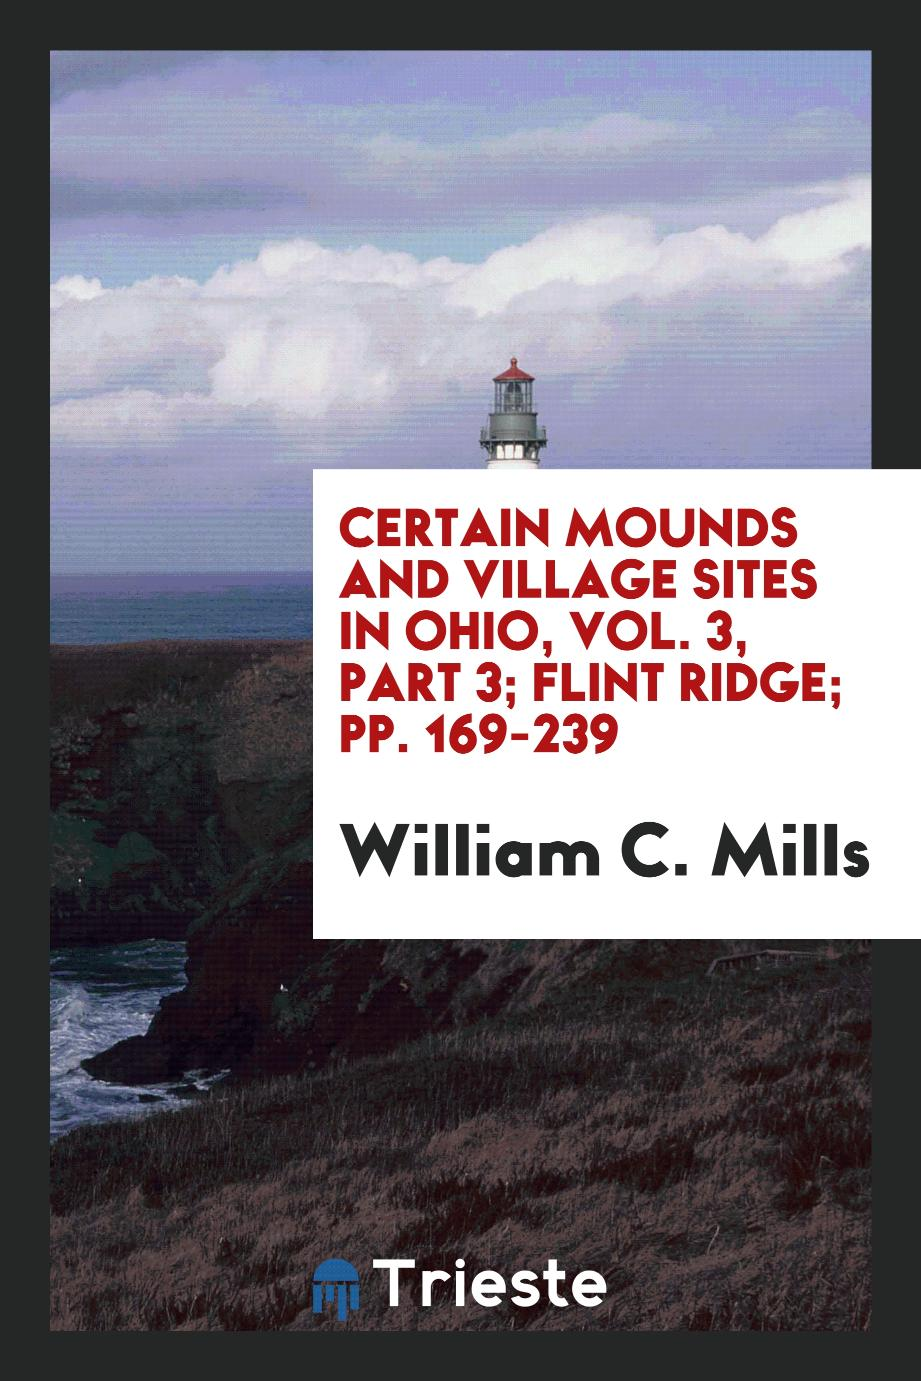 Certain Mounds and Village Sites in Ohio, Vol. 3, Part 3; Flint ridge; pp. 169-239